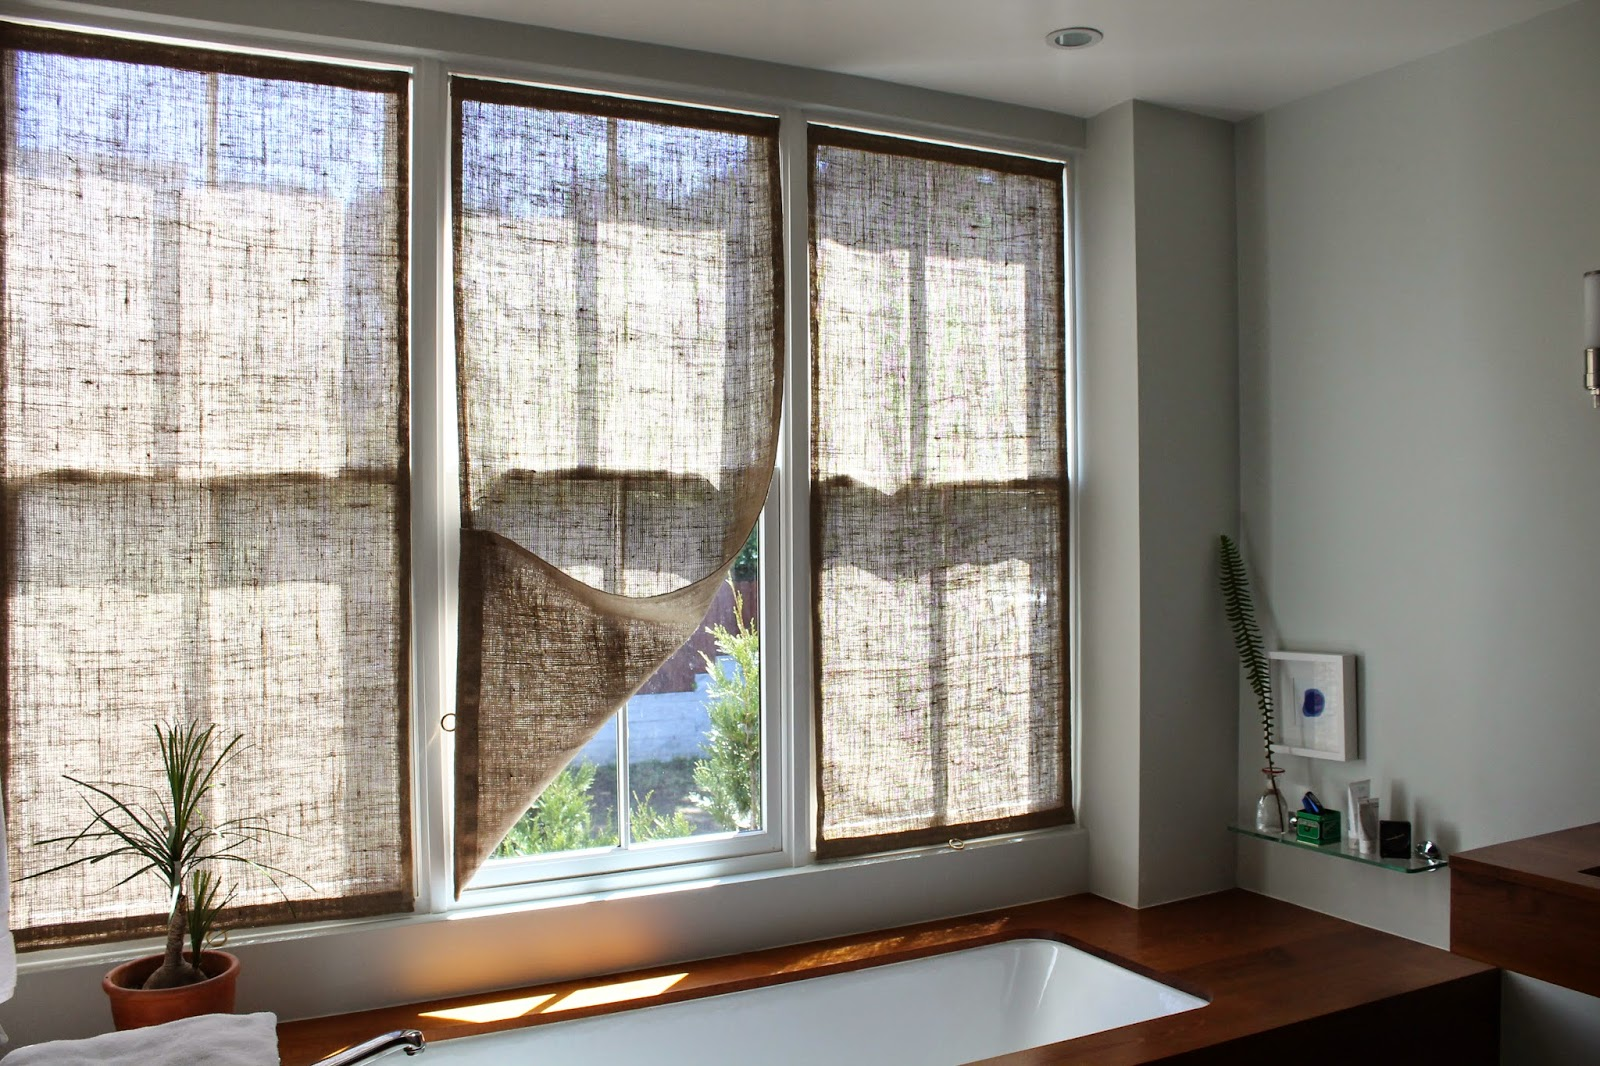 window shades for house indoor burlap window shades the shingled house